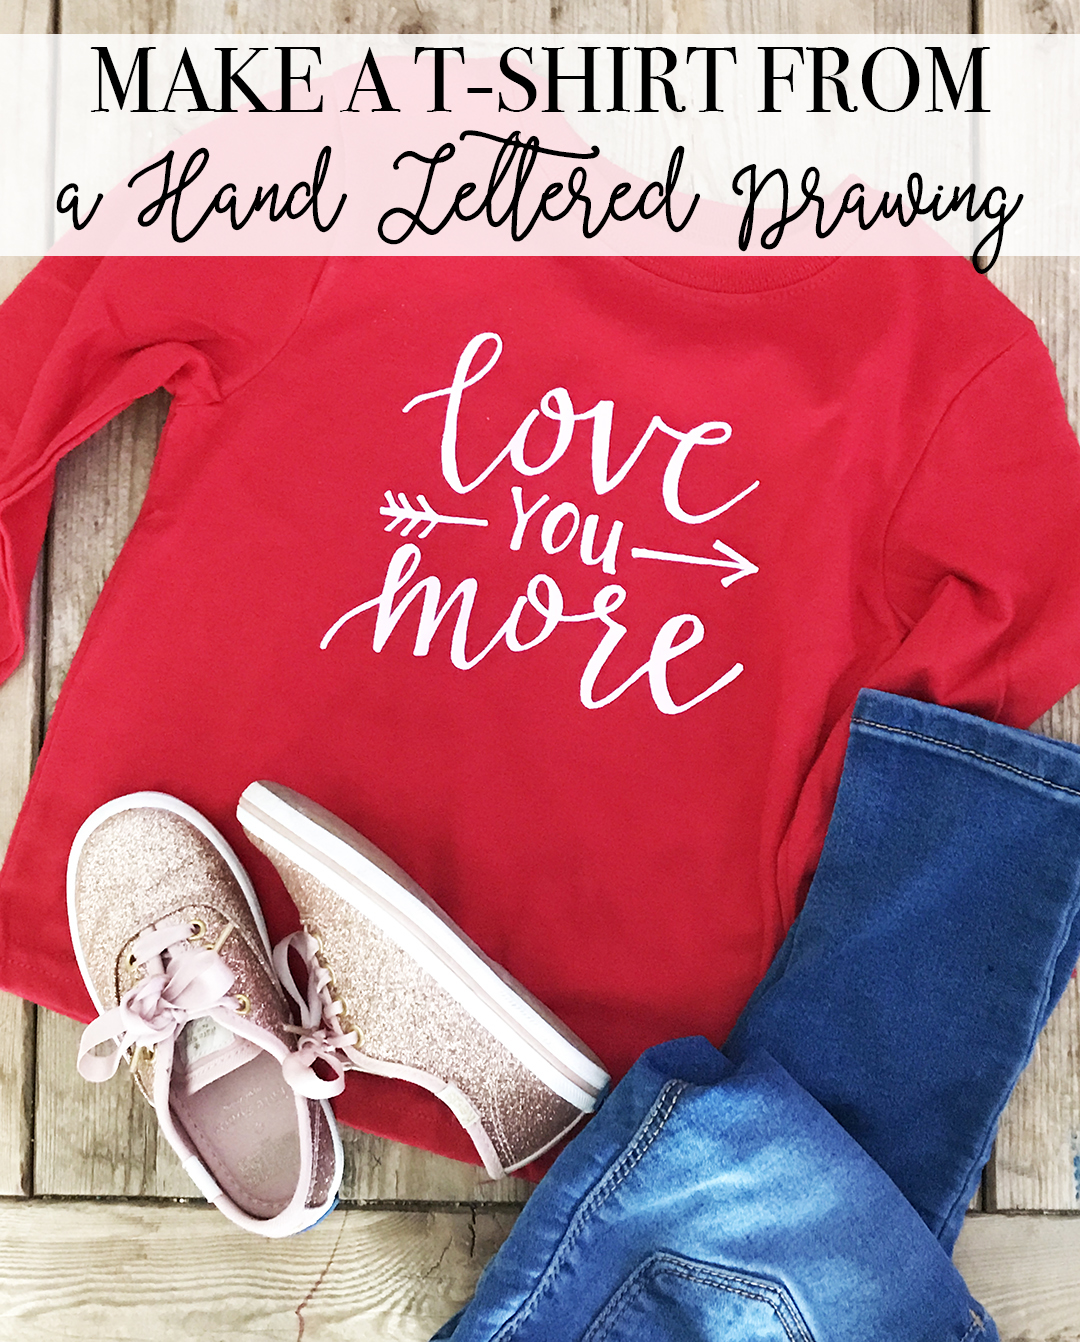 How to Make a T-shirt from a Hand Lettered Design